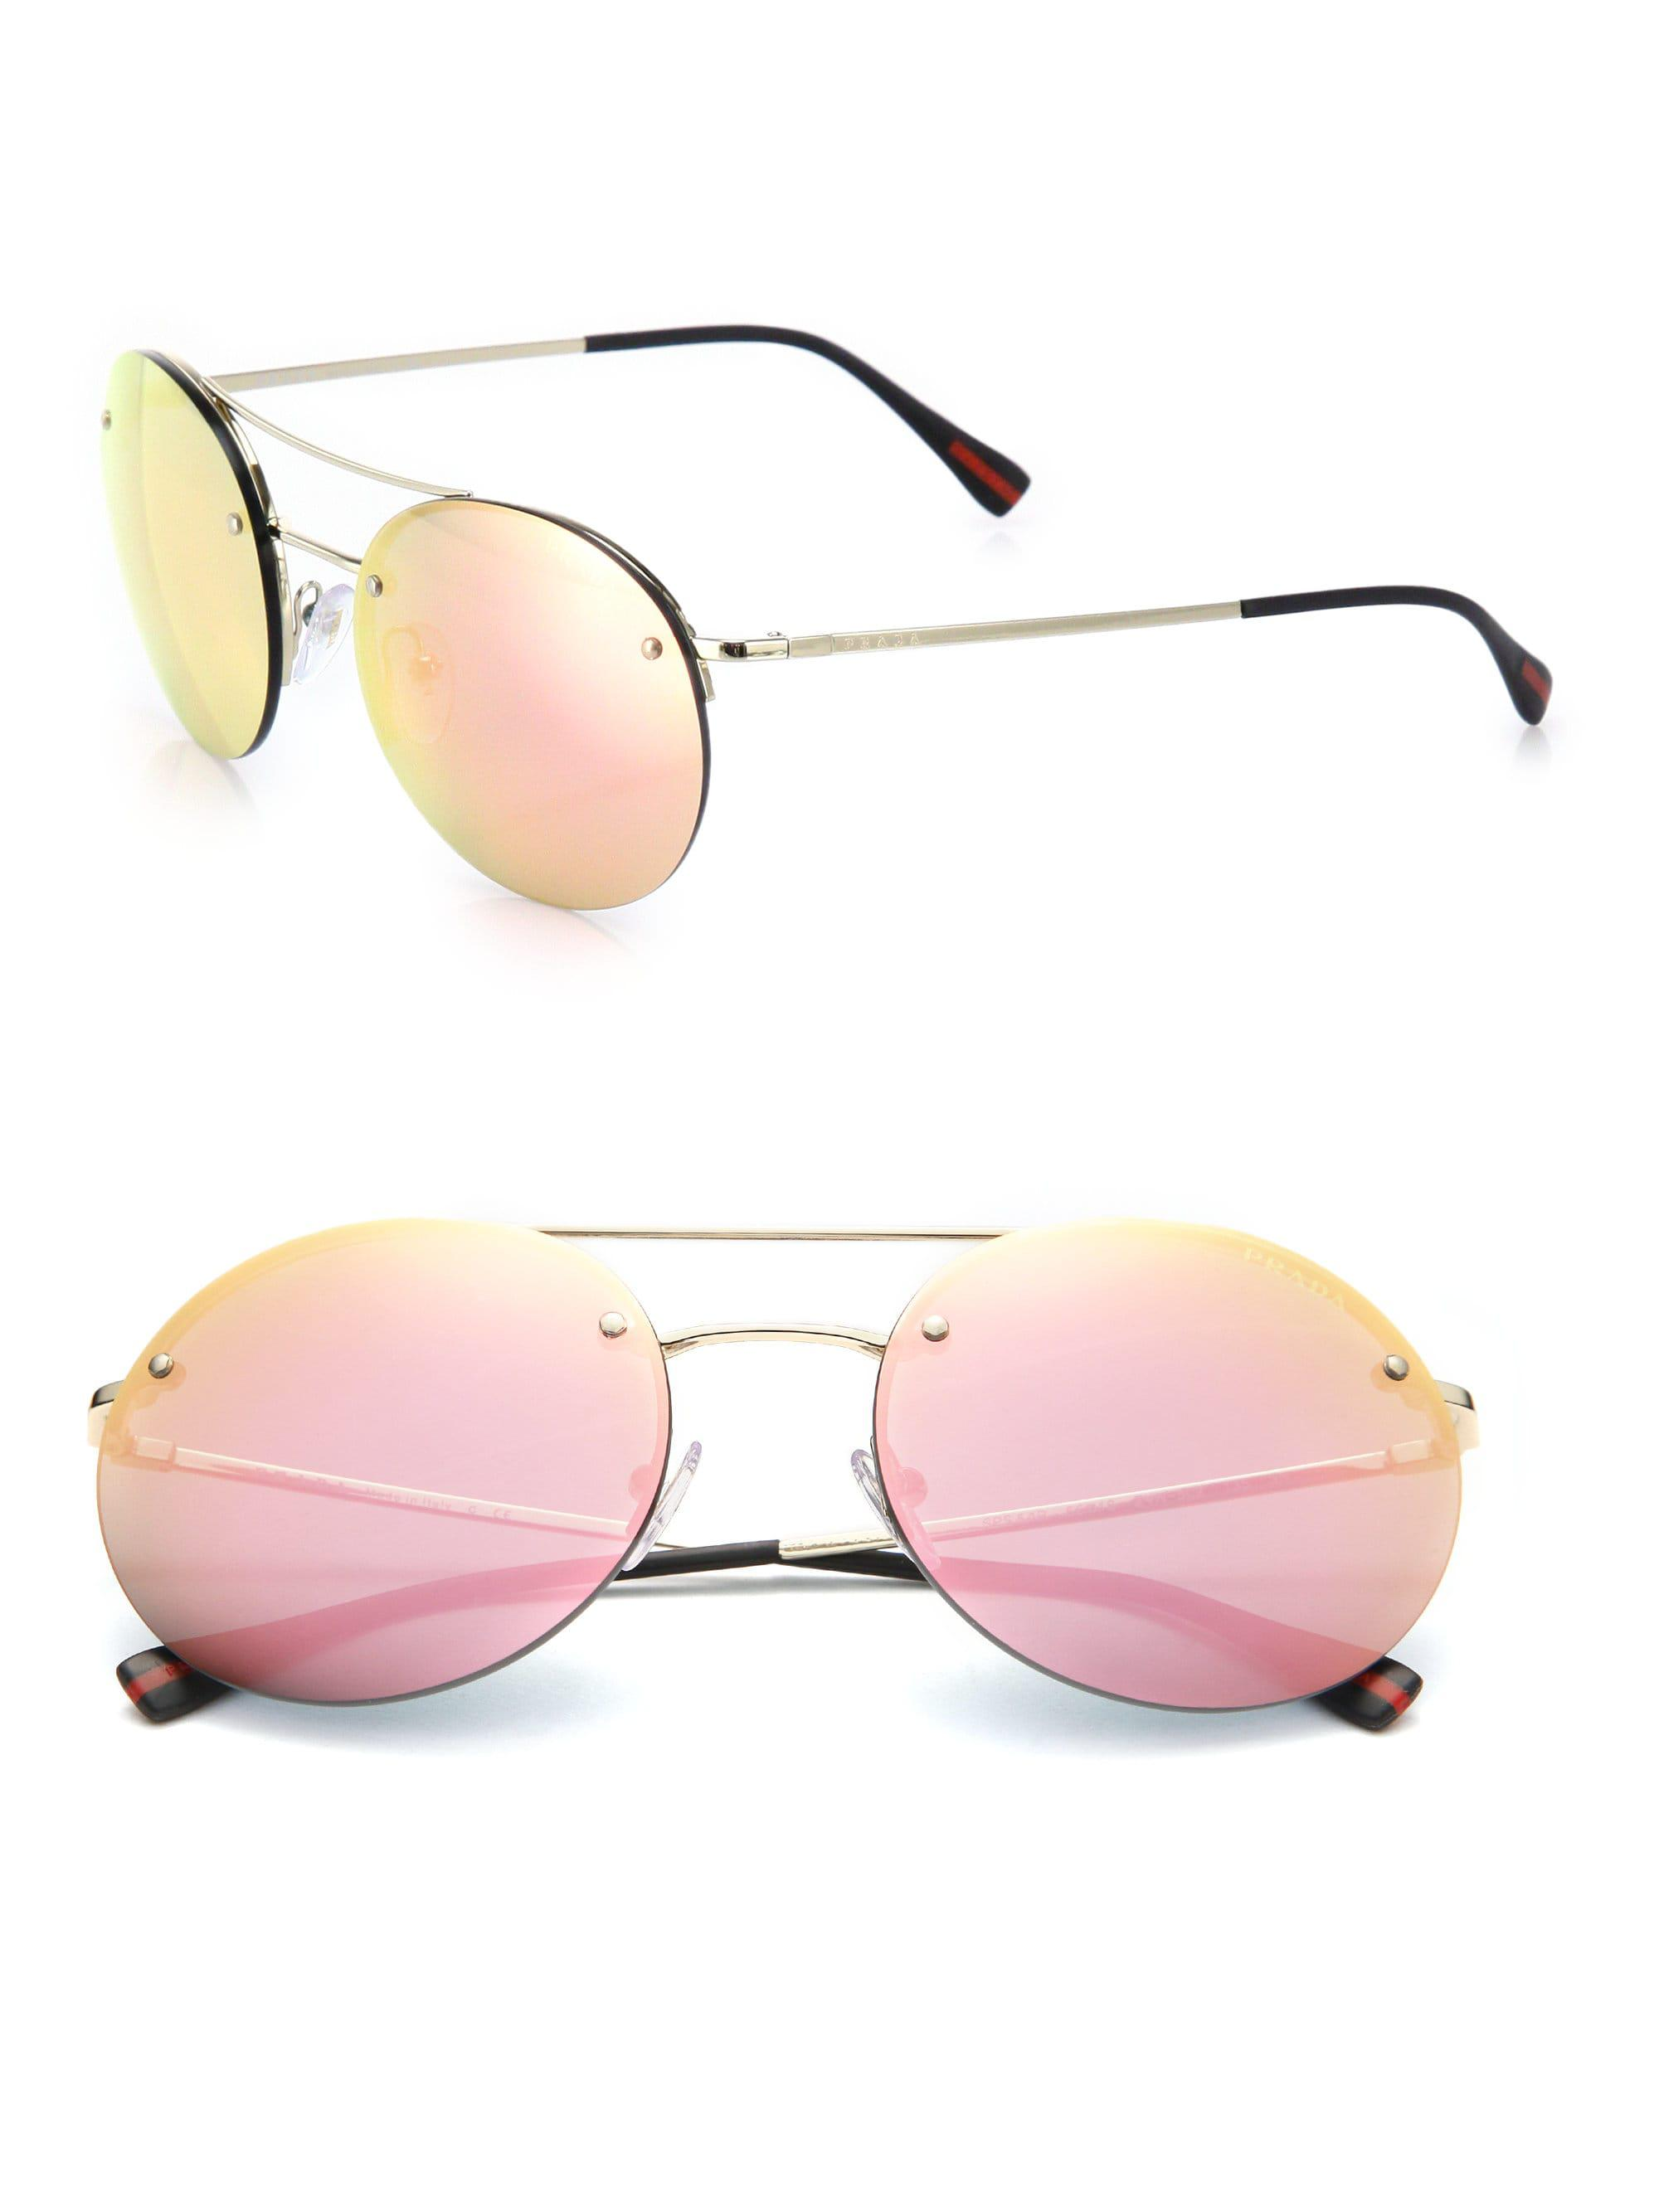 307fa50be713 Prada 56mm Round Metal Sunglasses in Pink for Men - Lyst